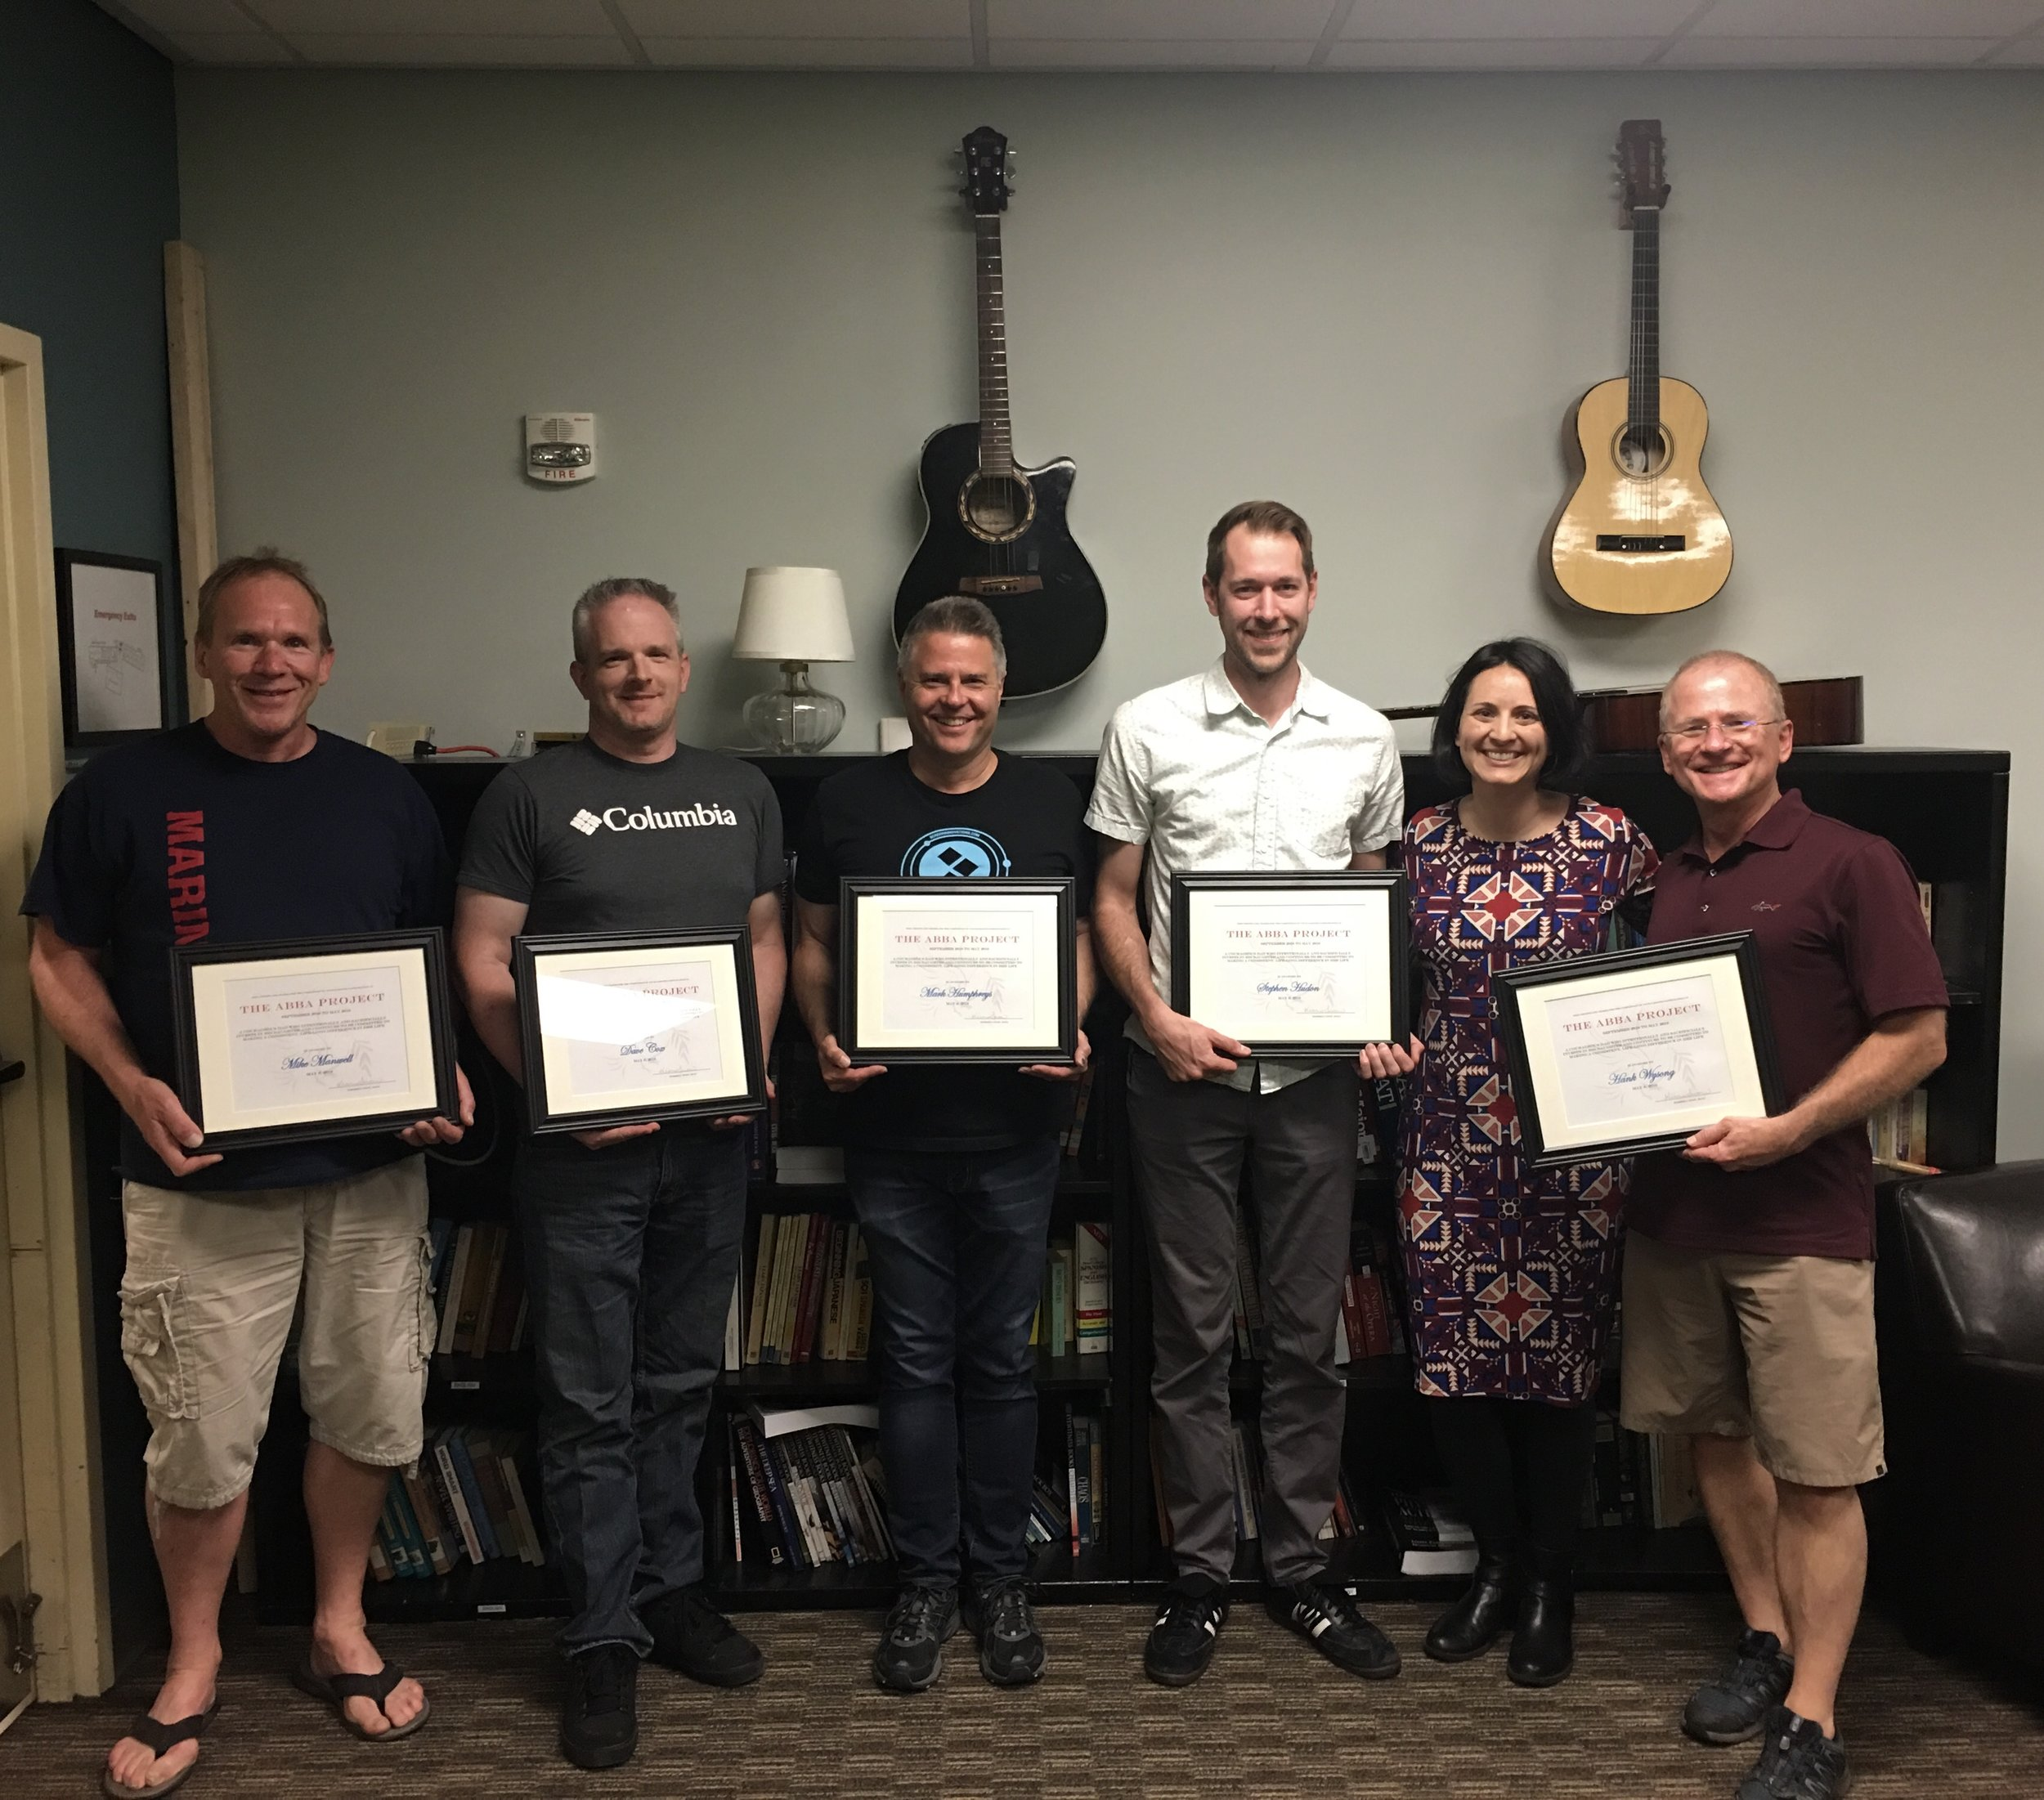 Here are Dr. Kim's first graduates of The Abba Project Bellevue 2018-19 (minus two dads who missed the picture). Great job men!